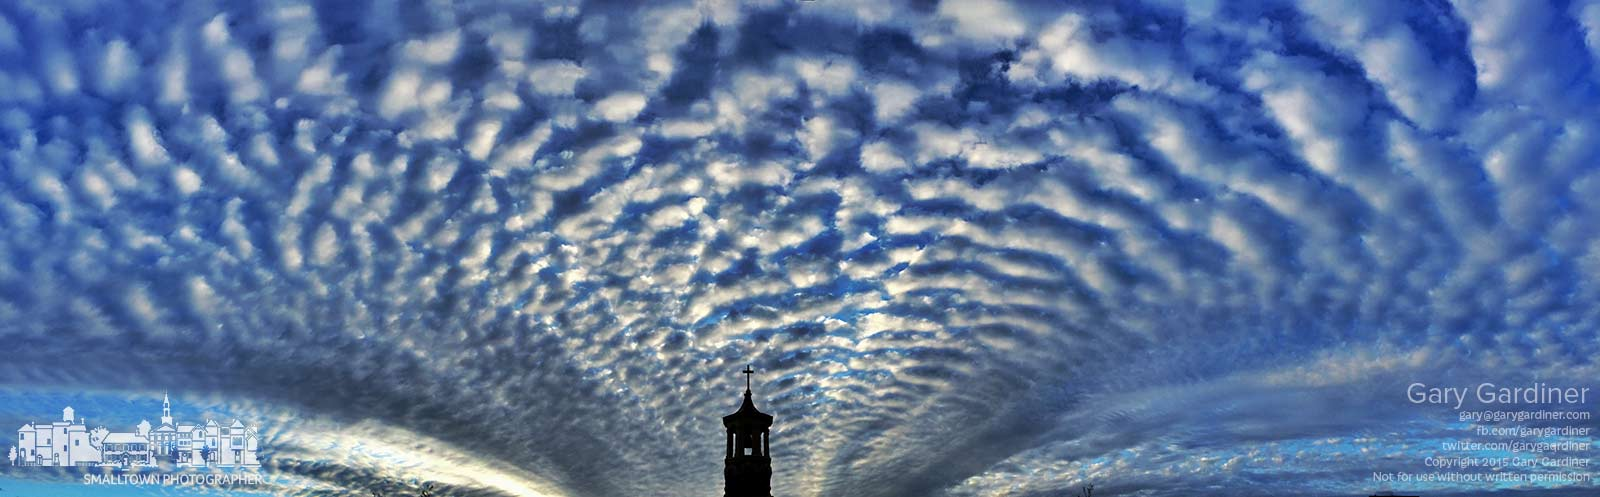 A blanket of clouds covers the sky at sunrise over the original church steeple for St. Paul Catholic Church. My Final Photo for April 27, 2015.